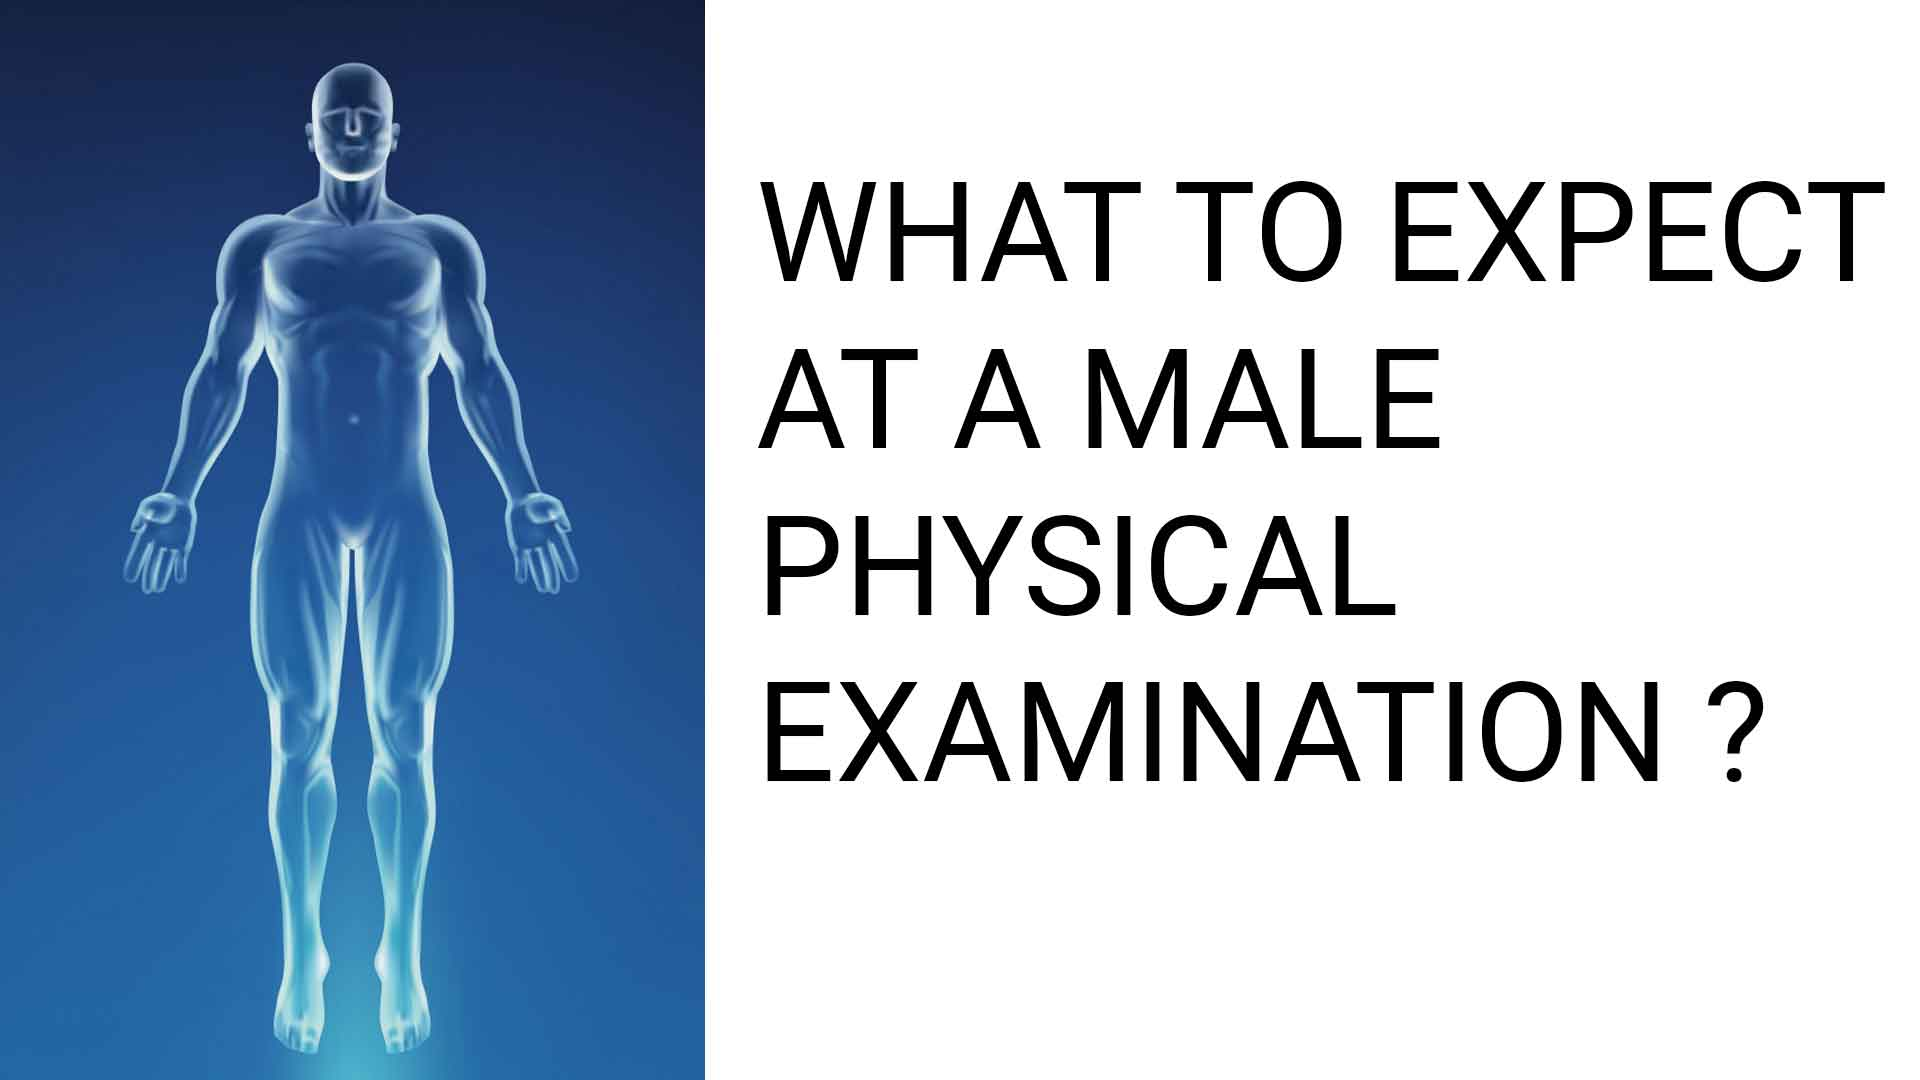 Male infertility Evaluation - Physical examination of Infertile male